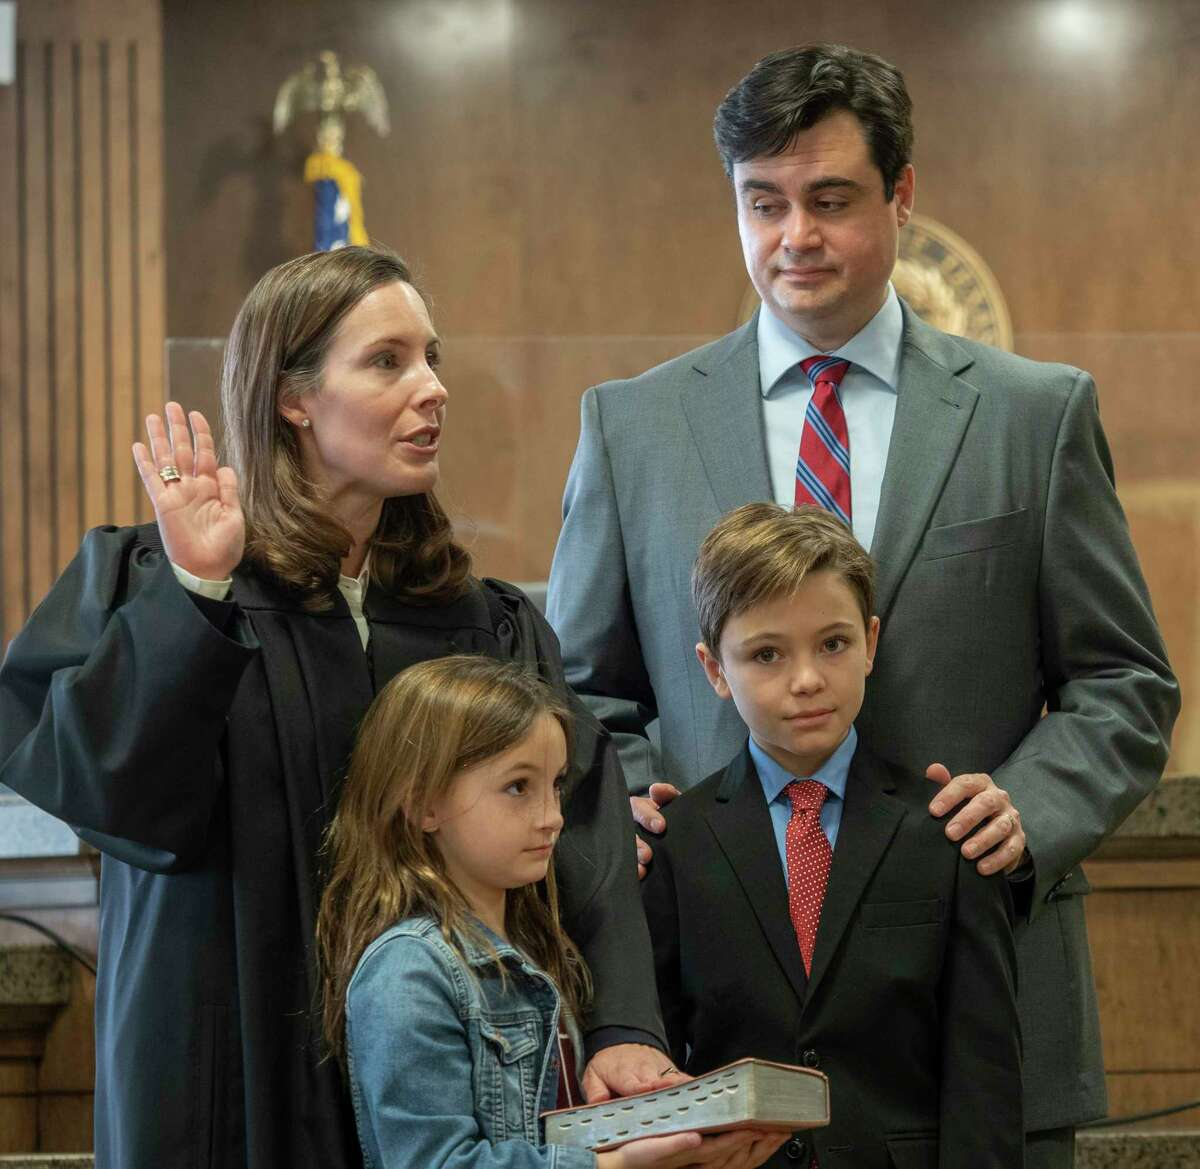 Judge Jeff Robnett gives the oath of office to Judge Leah Robertson, with her husband Stephen and children Ethan and Emma 01/04/2021 in the Midland County 142nd District Courtroom. Tim Fischer/Reporter-Telegram